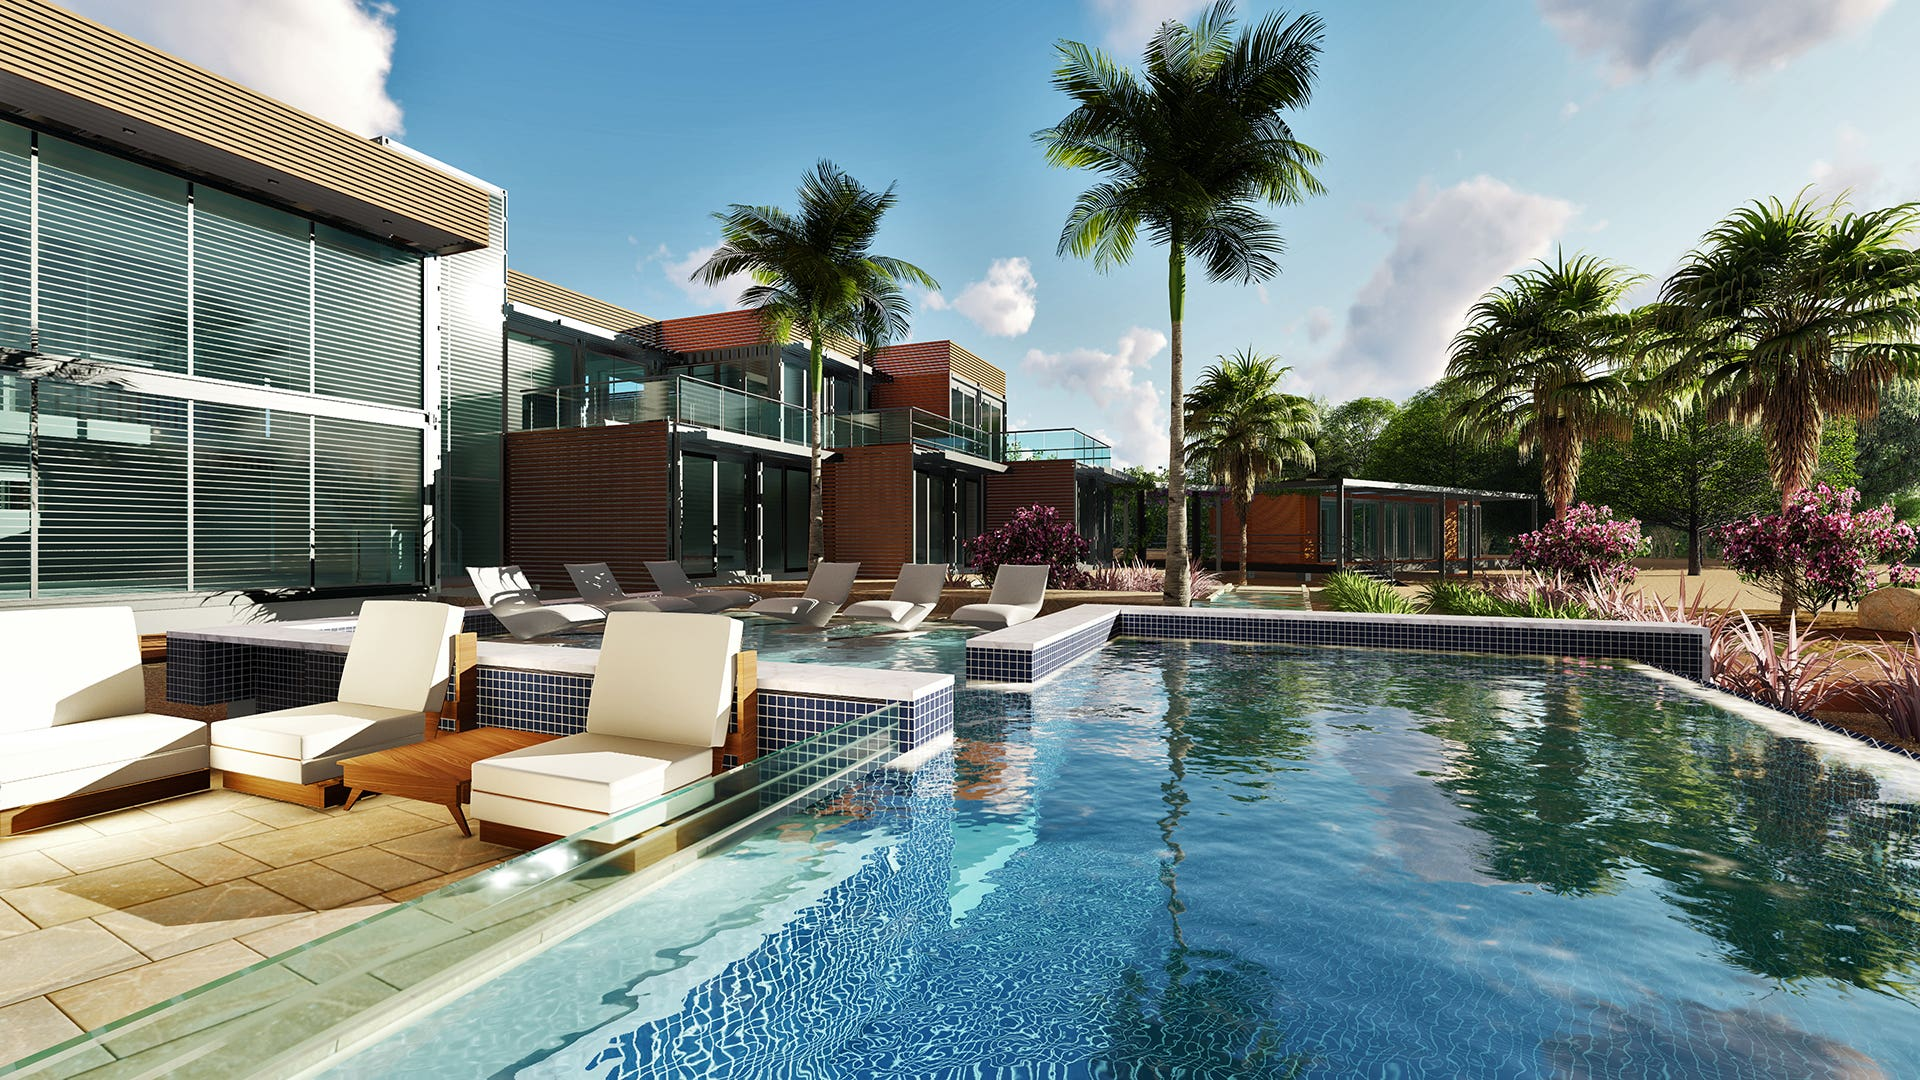 Architectural work of pool area and landscape